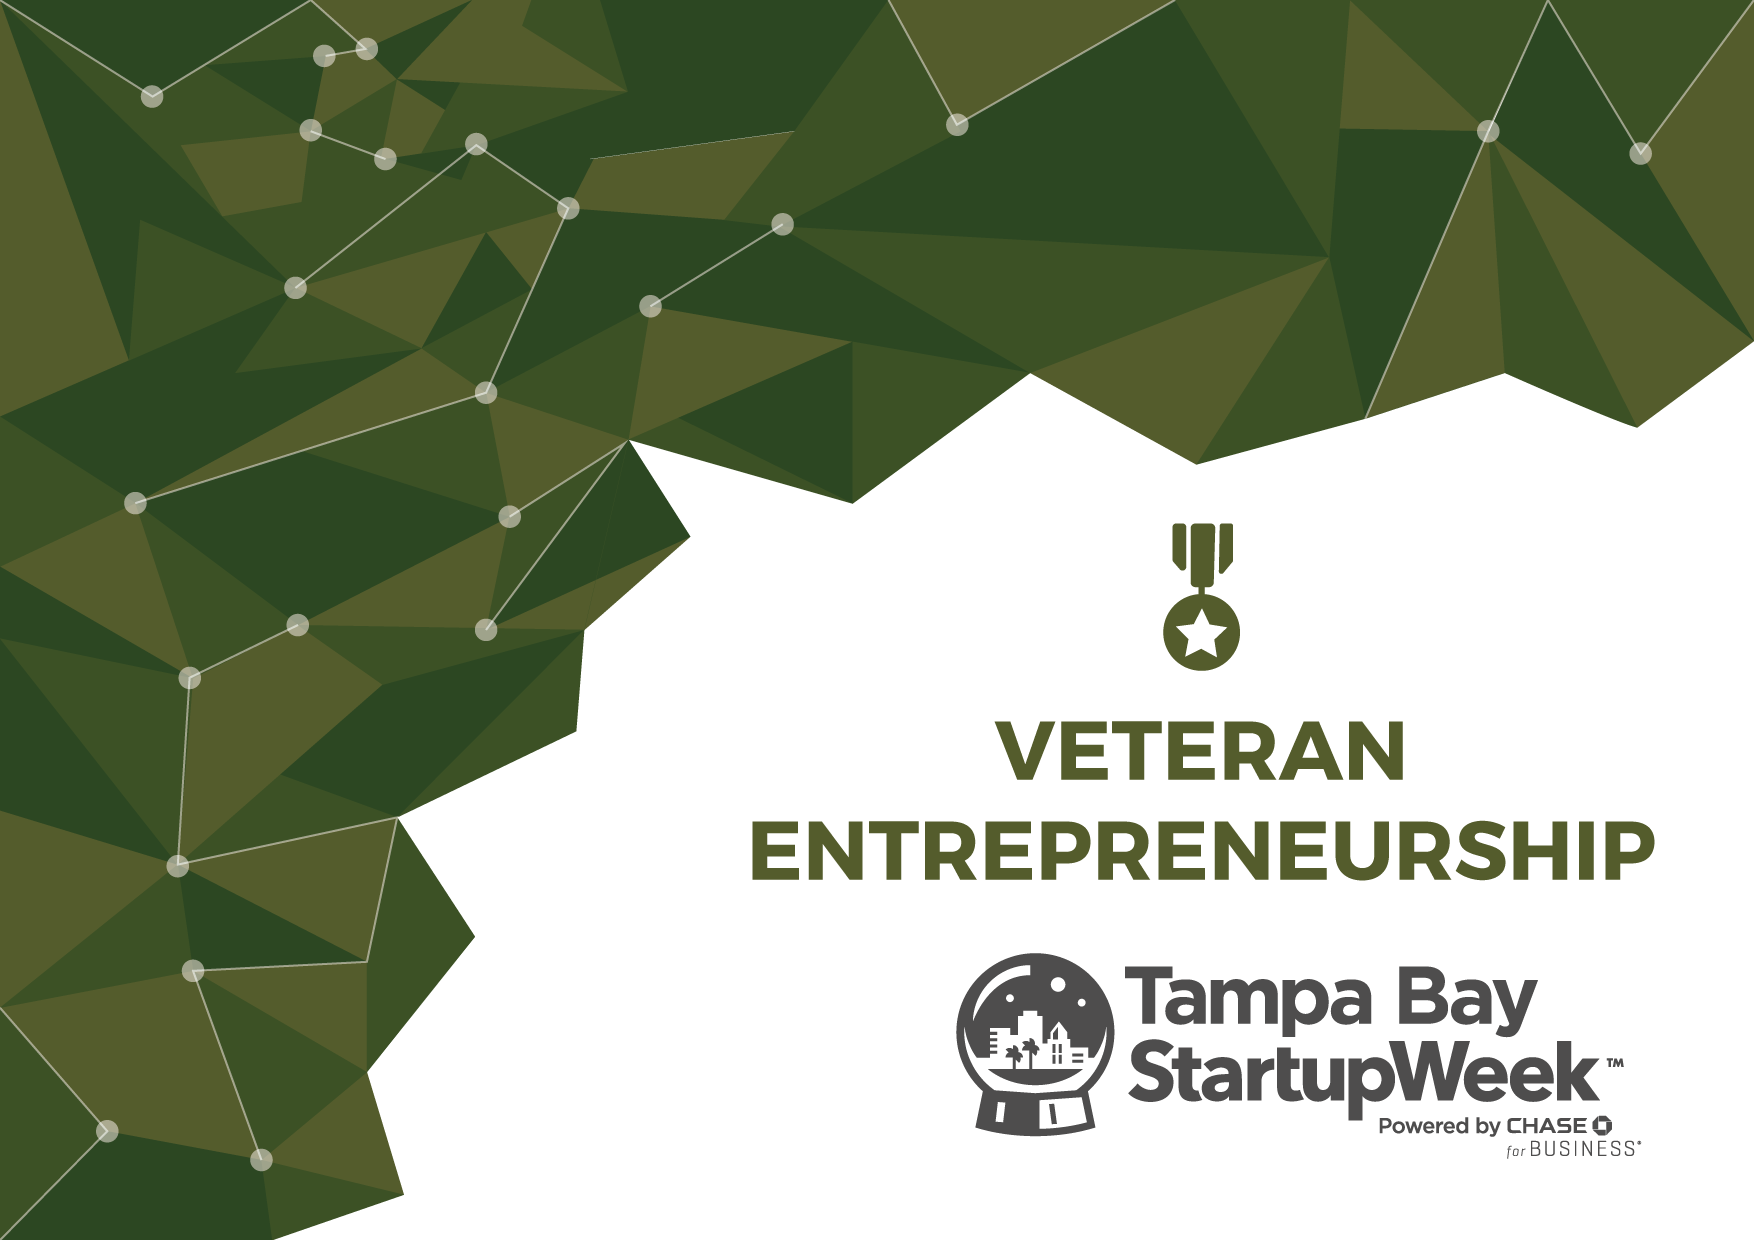 TRACK HIGHLIGHT: Veteran Entrepreneurship powered by Red Wall Marketing